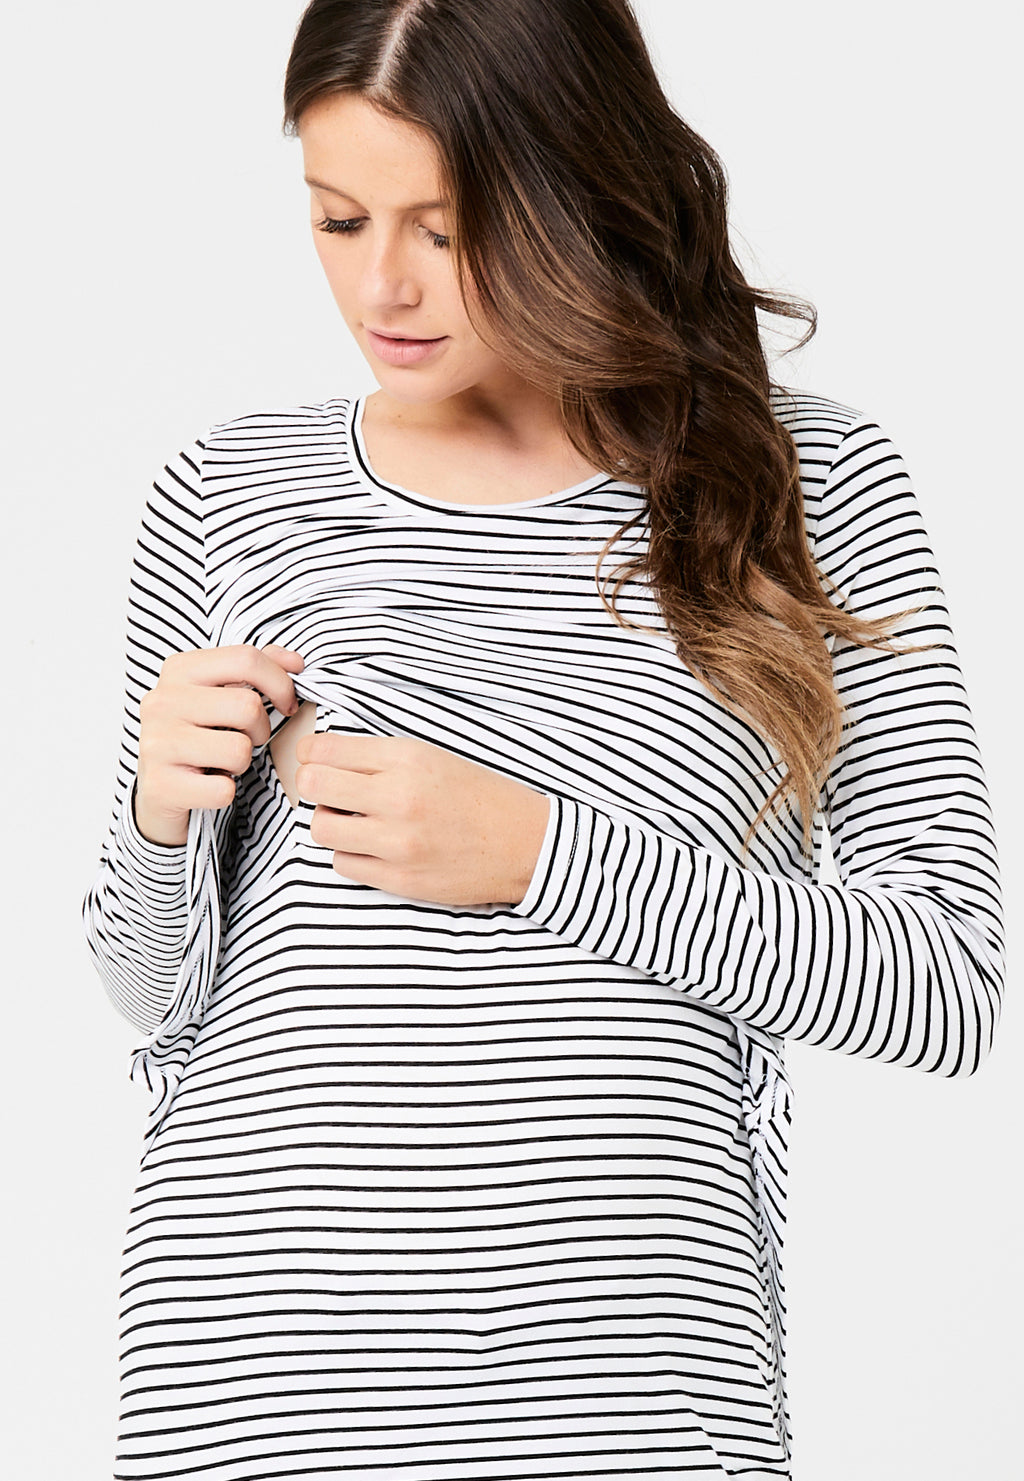 Maternity clothing Canada. Nursing tops Canada, affordable breastfeeding clothing. Fall pregnancy, Free shipping, affordable.